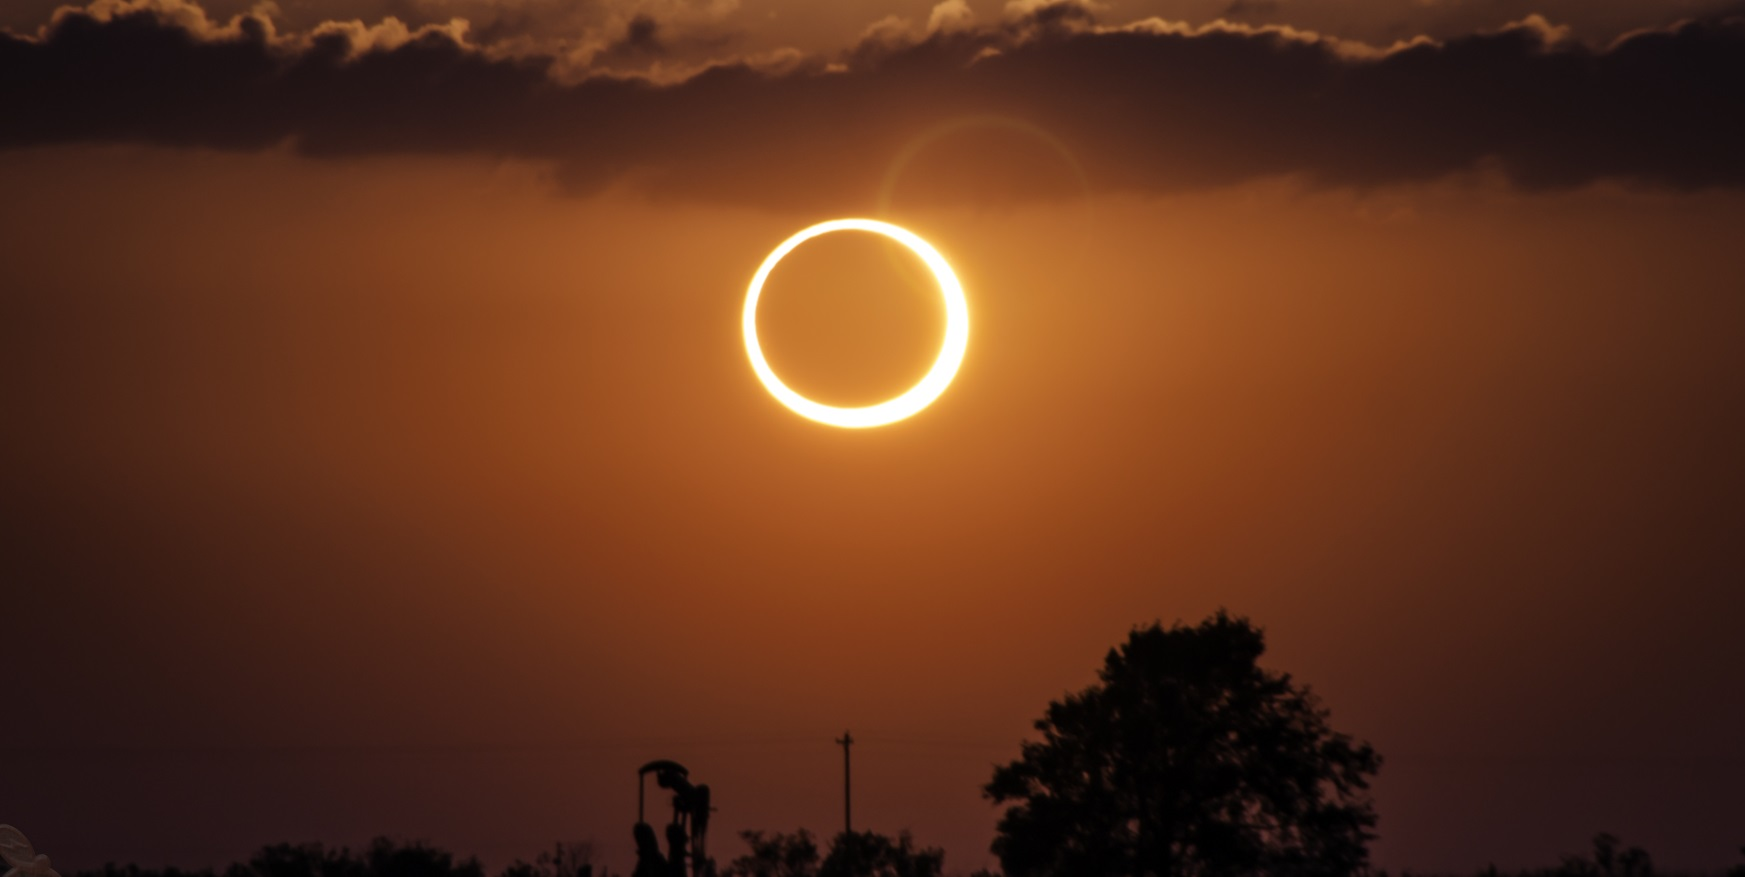 annular-eclipse-120520-rework-3-2a-small